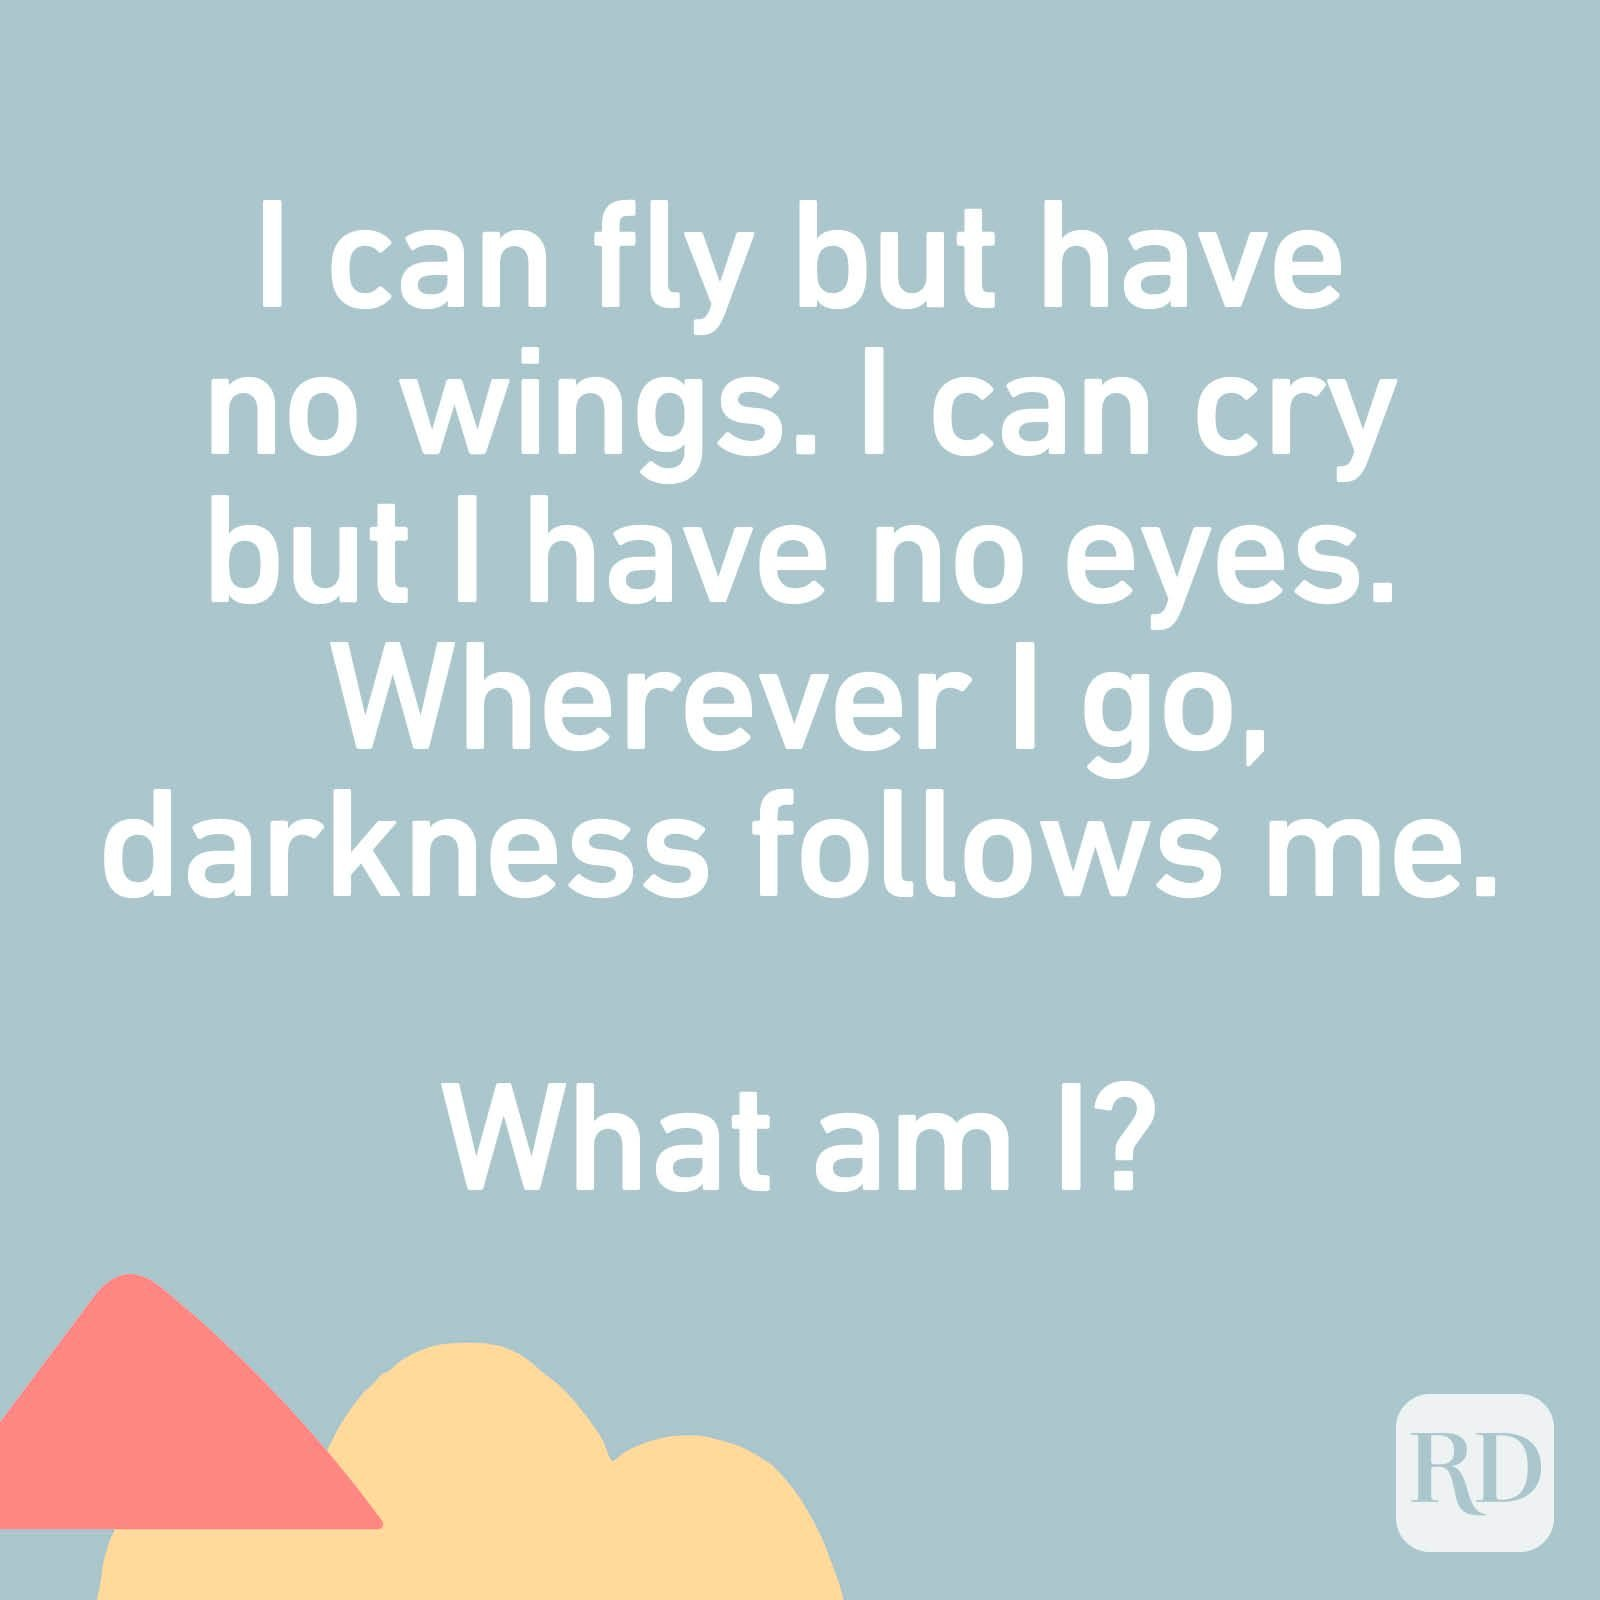 I can fly but have no wings. I can cry but I have no eyes. Wherever I go, darkness follows me. What am I?